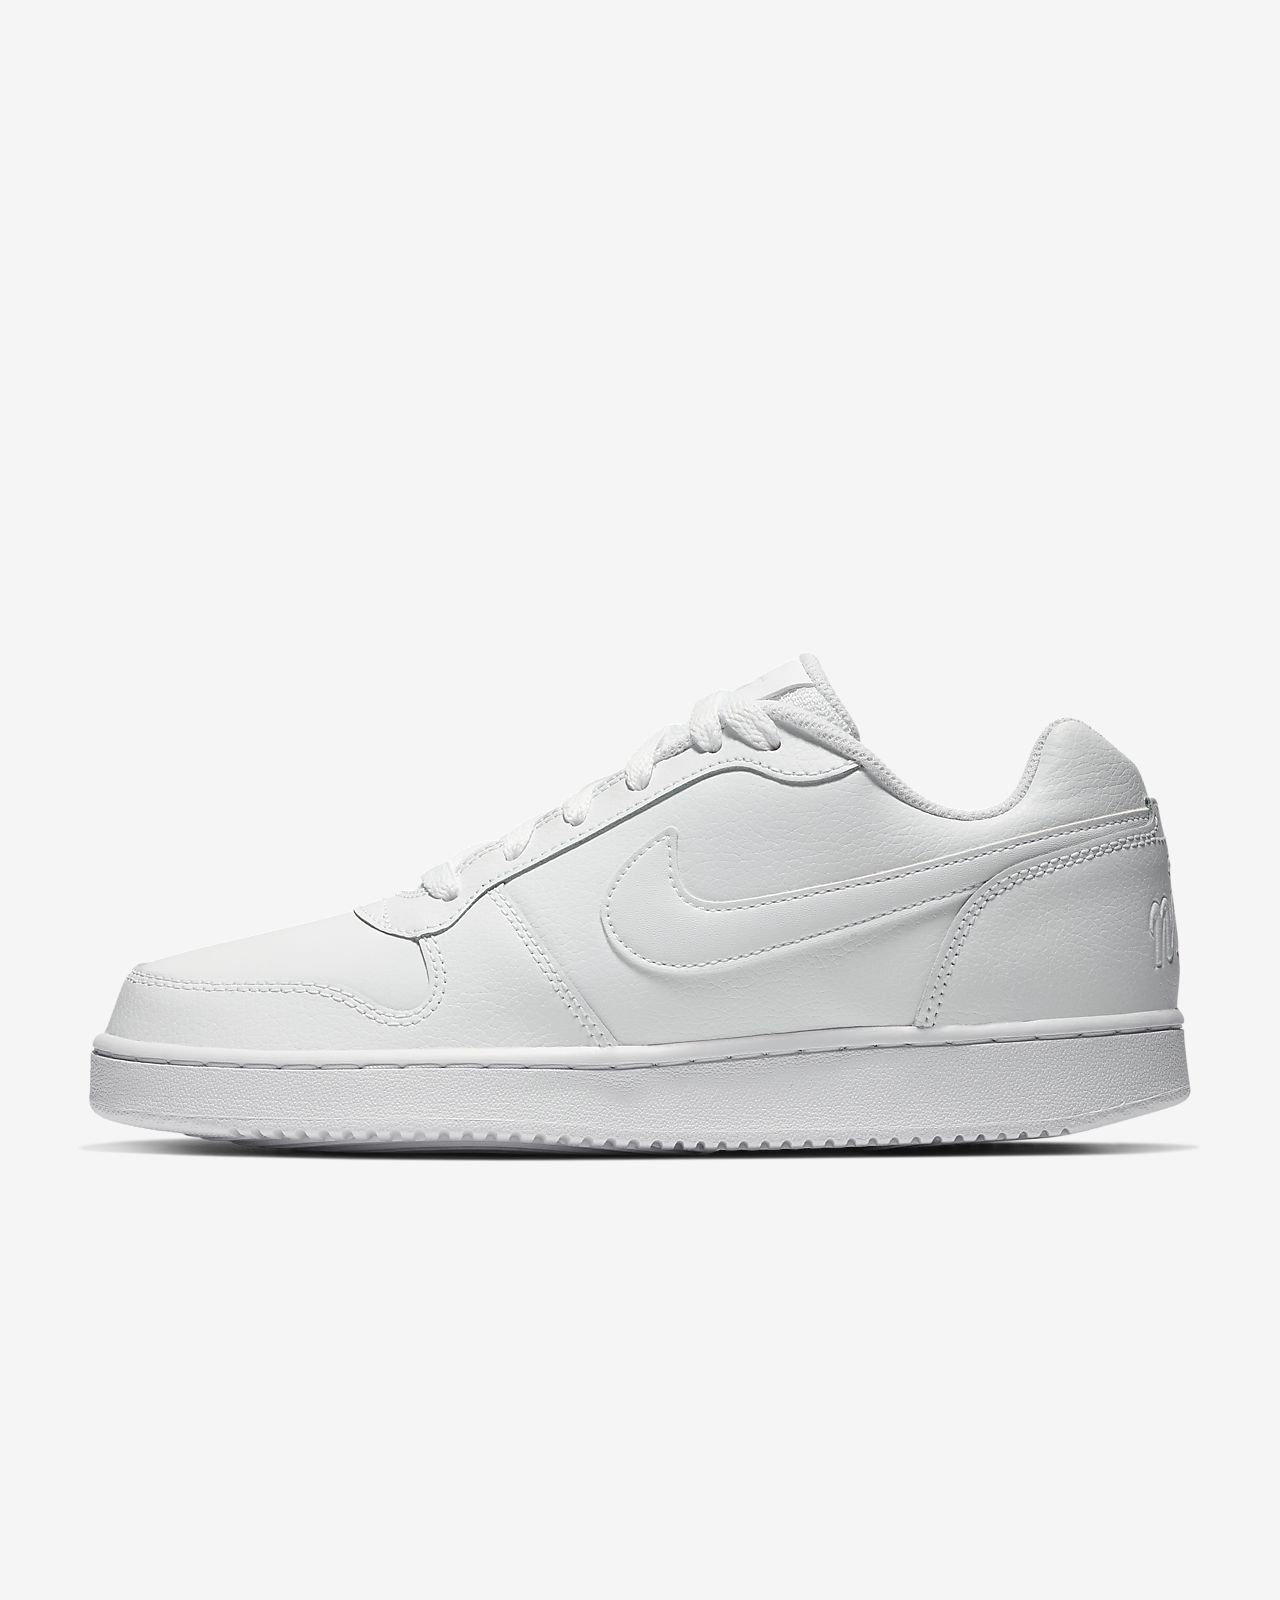 Nike Ebernon Low Women's Shoe